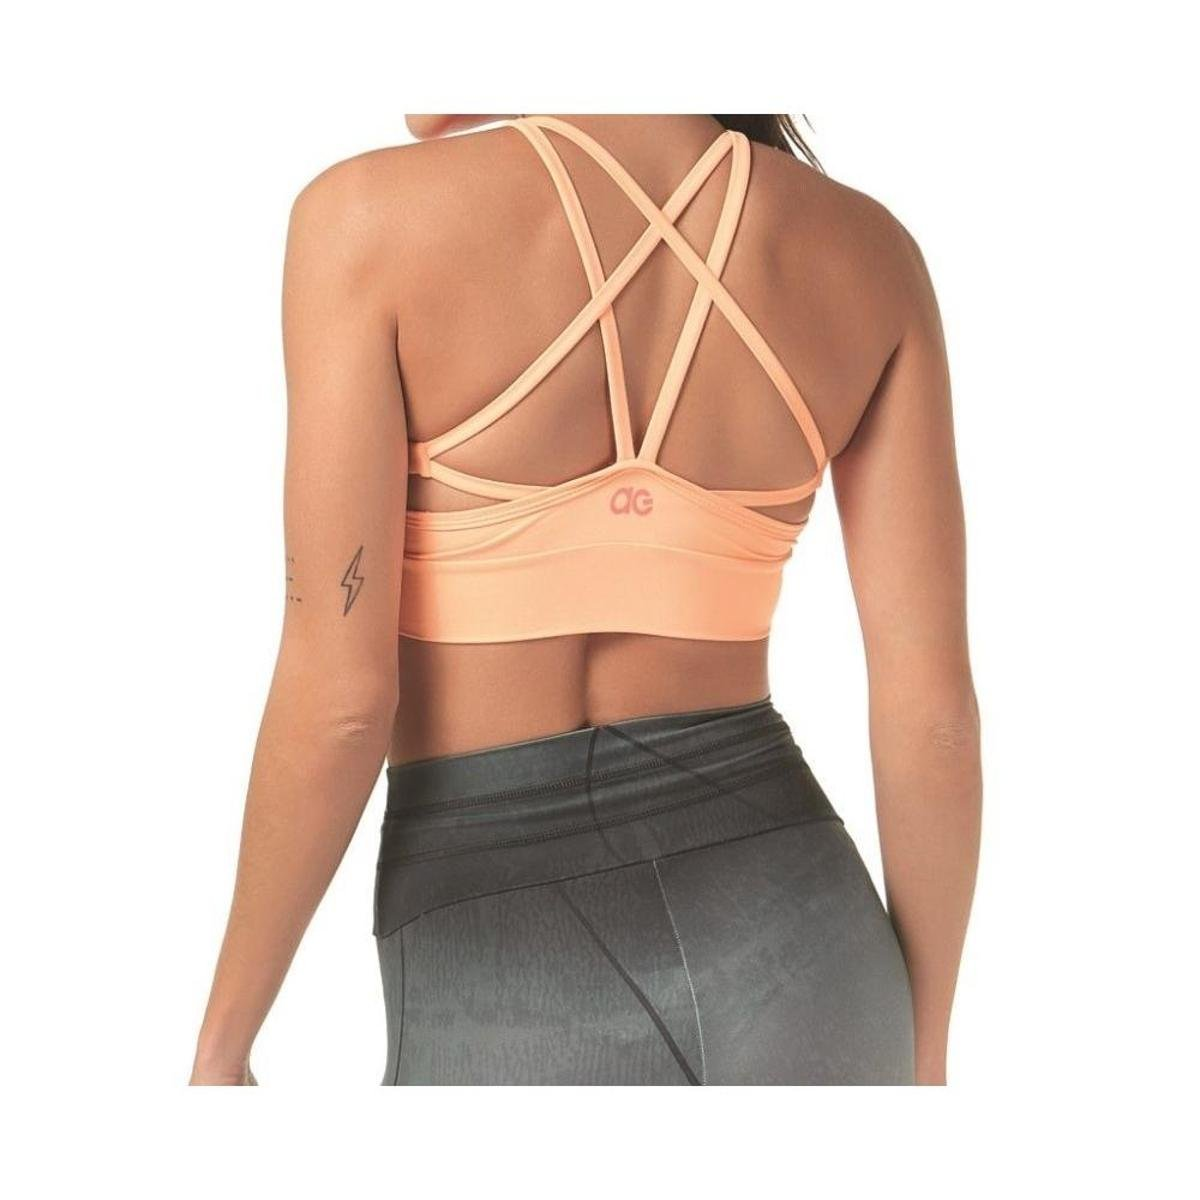 Degradê 731533 Giro 731533 Degradê Top Giro Alto Top Laranja Laranja Alto Top vAUwqzA